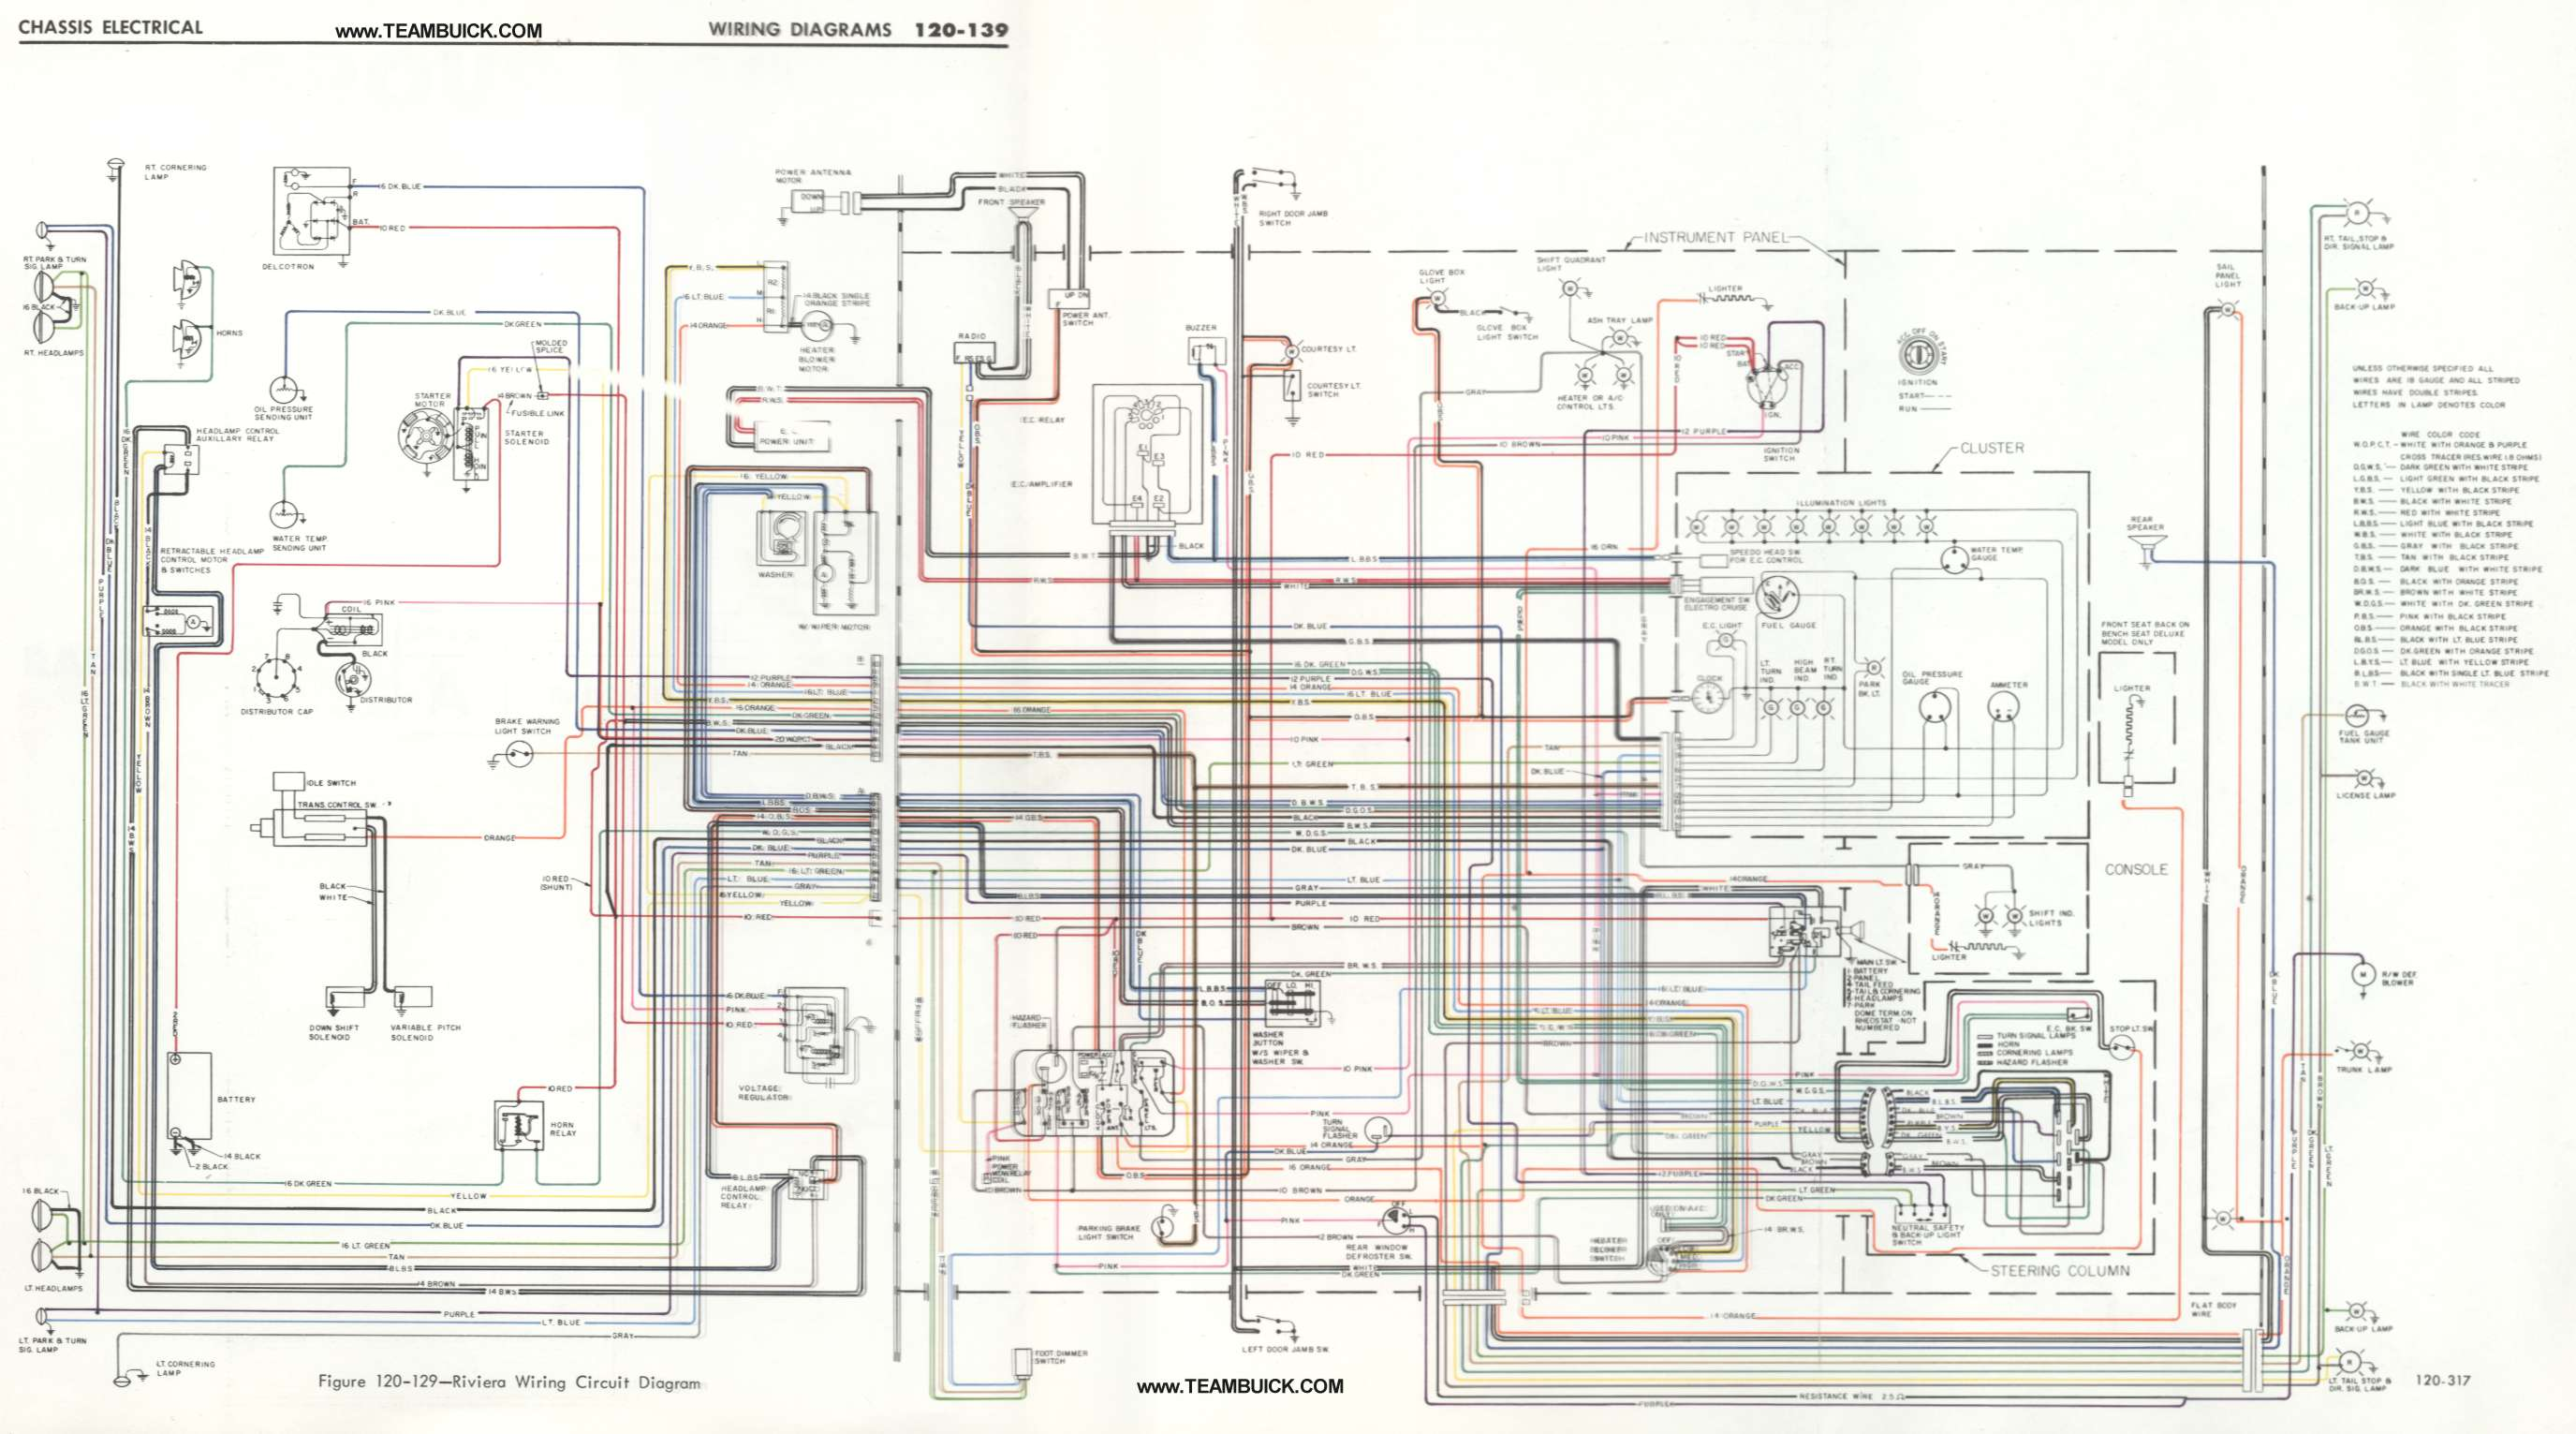 1997 Buick Riviera Wiring Diagram - Wiring Diagram Post on 1997 buick park avenue belt routing, 1997 buick lesabre engine diagram, 1997 buick century radio wiring diagram,